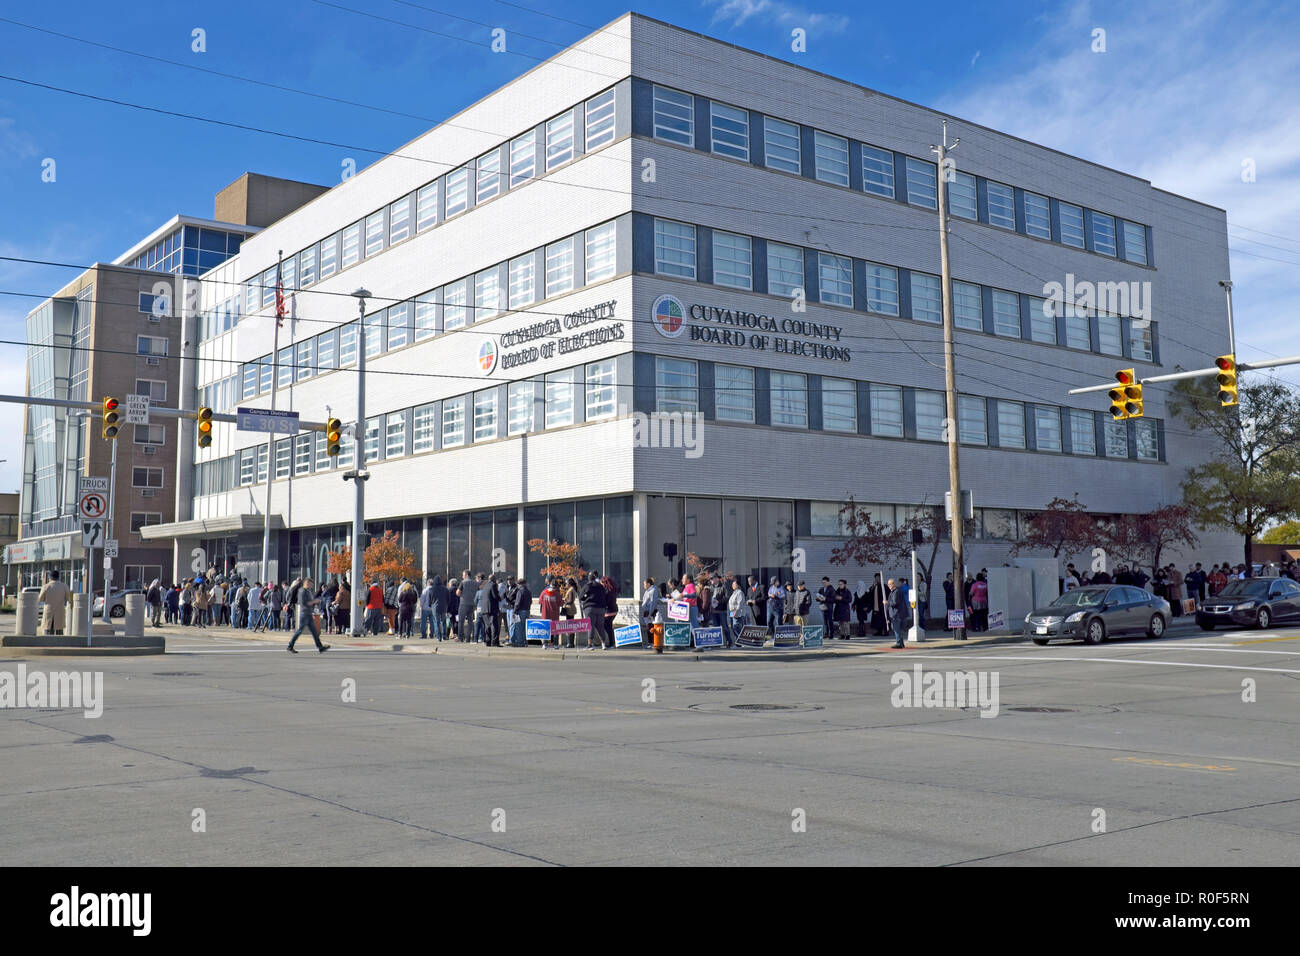 Cleveland, Ohio, USA.  4th Nov, 2018.  Early voters for the US midterm elections wait in line to cast ballots outside the Cuyahoga County Board of elections.  The line wraps around the block from inside the Board of Elections on Superior Avenue down East 30th Street in downtown Cleveland, Ohio, USA.  Credit: Mark Kanning/Alamy Live News. - Stock Image